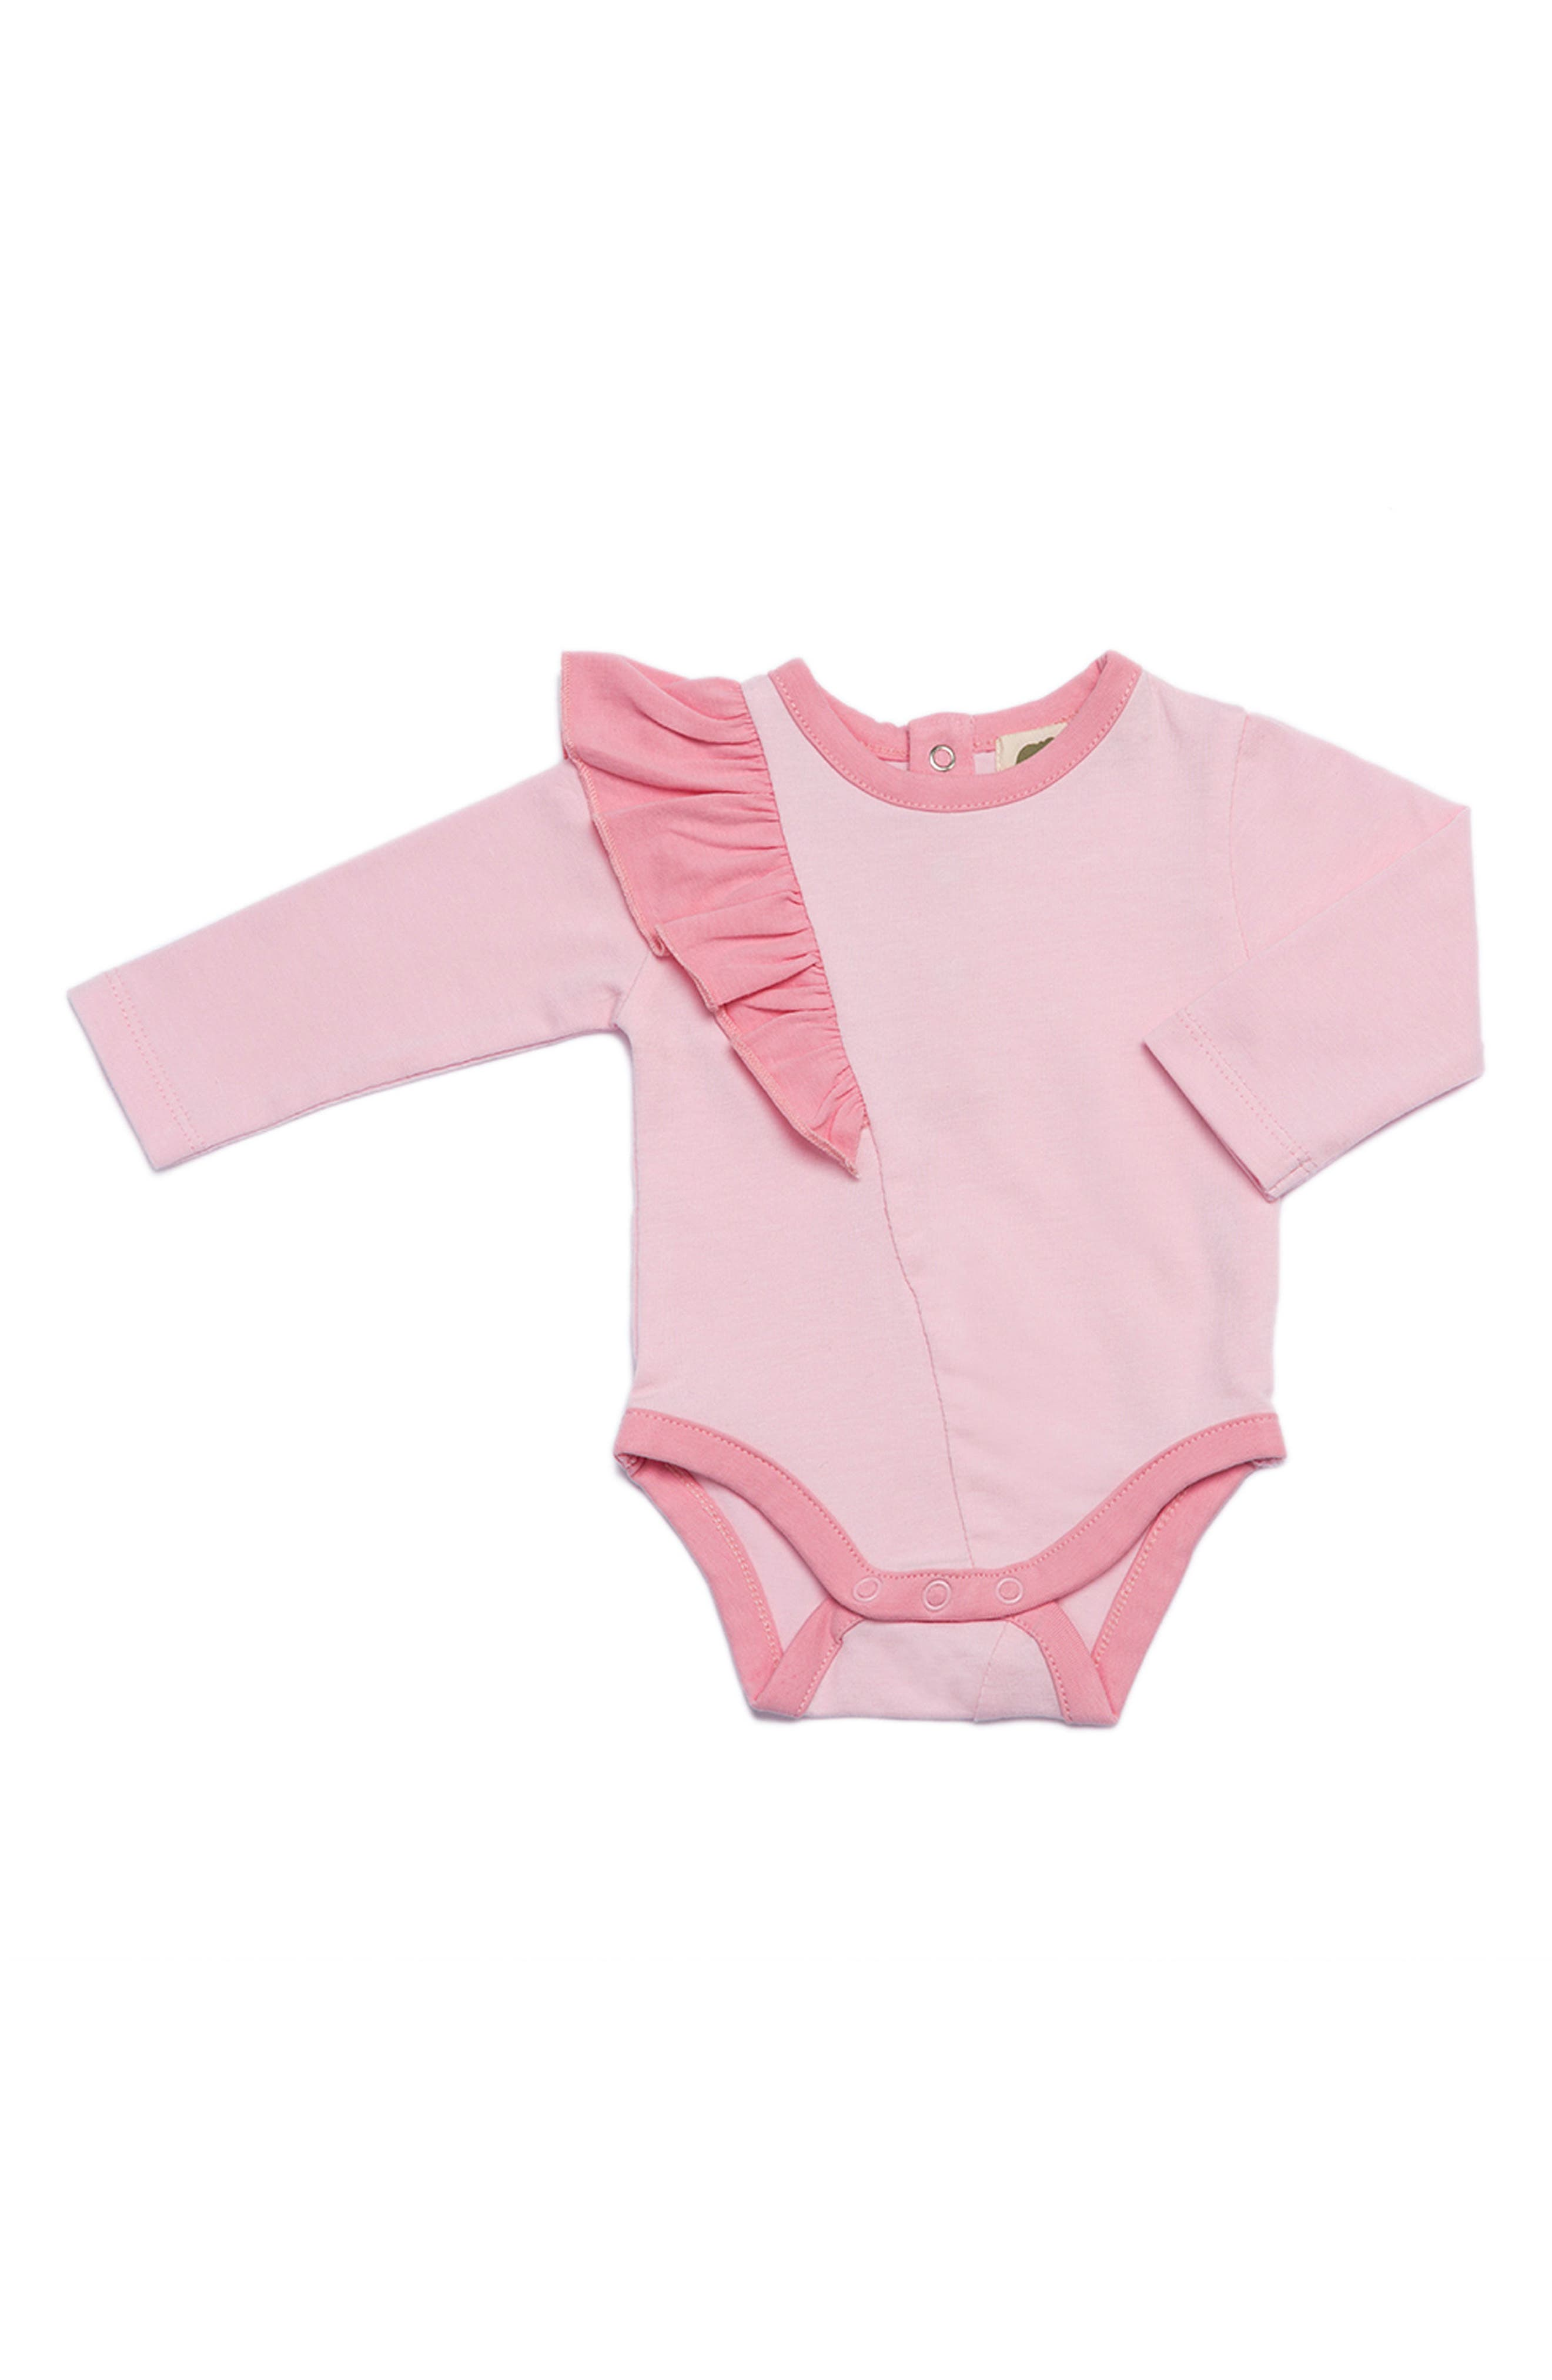 Ruffle Organic Cotton Bodysuit,                             Main thumbnail 1, color,                             Baby Pink